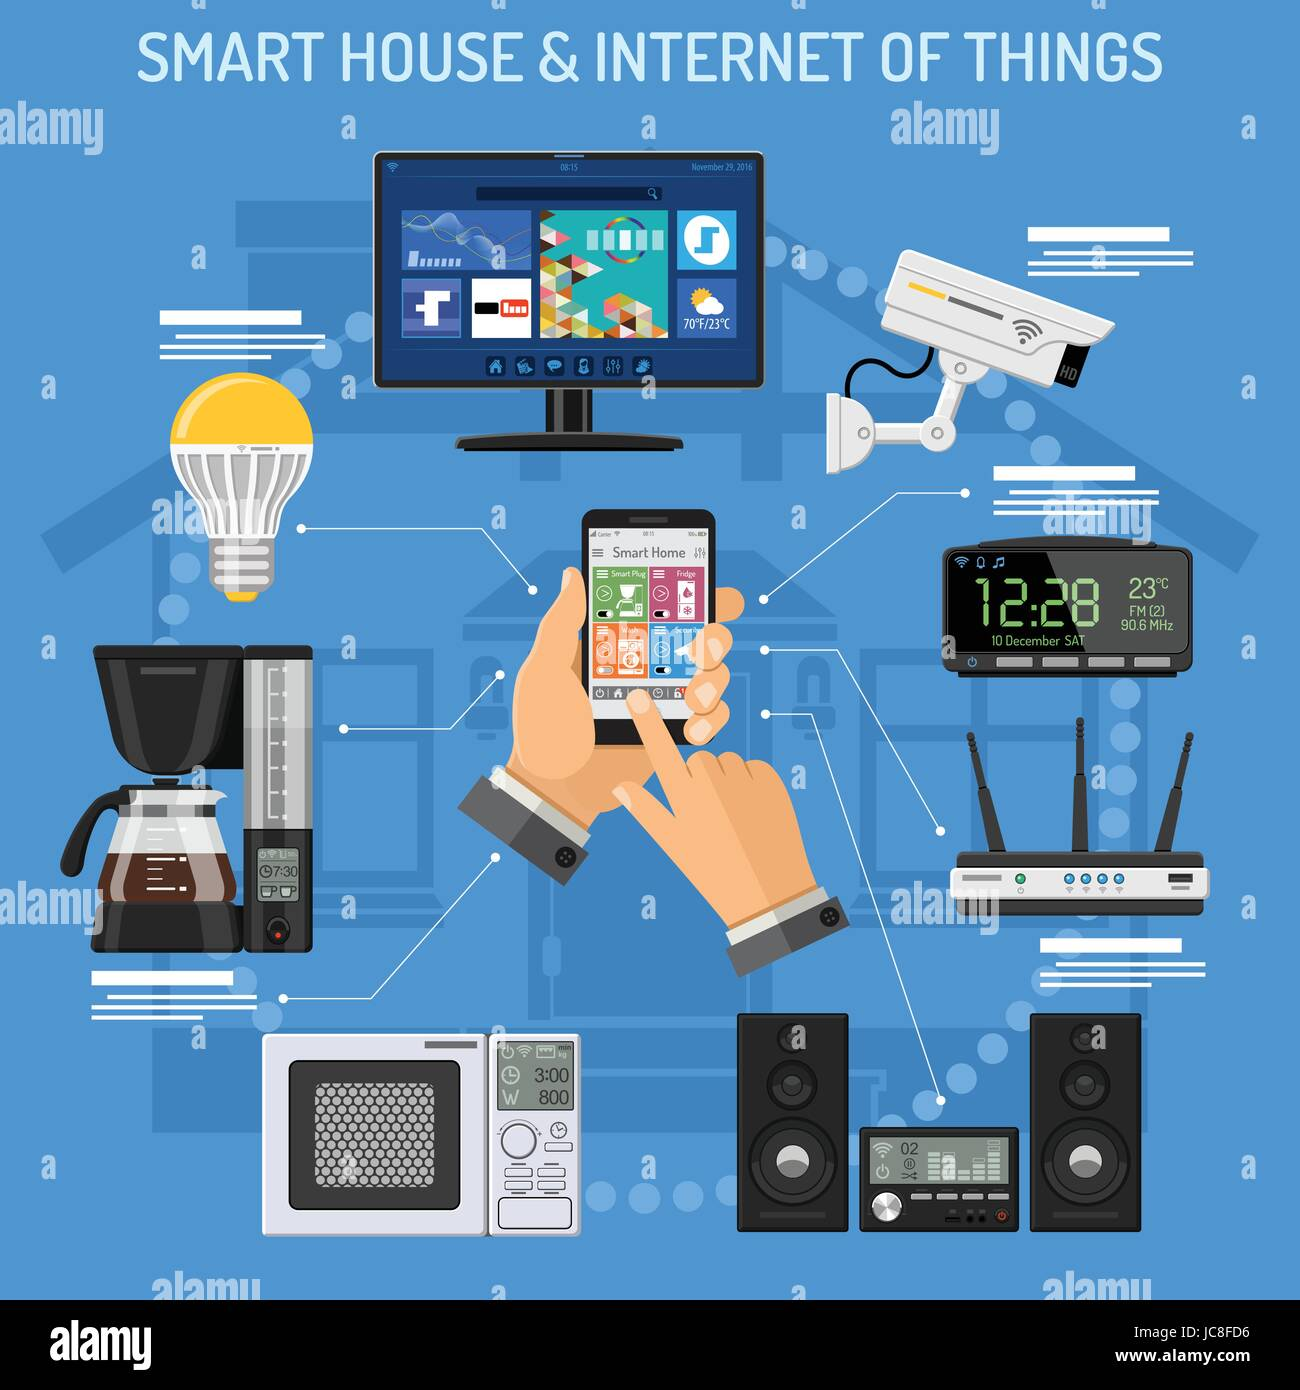 Smart House and internet of things concept with flat icons. Man holding smartphone in hand and controls smart home devices like security camera, TV, l Stock Vector